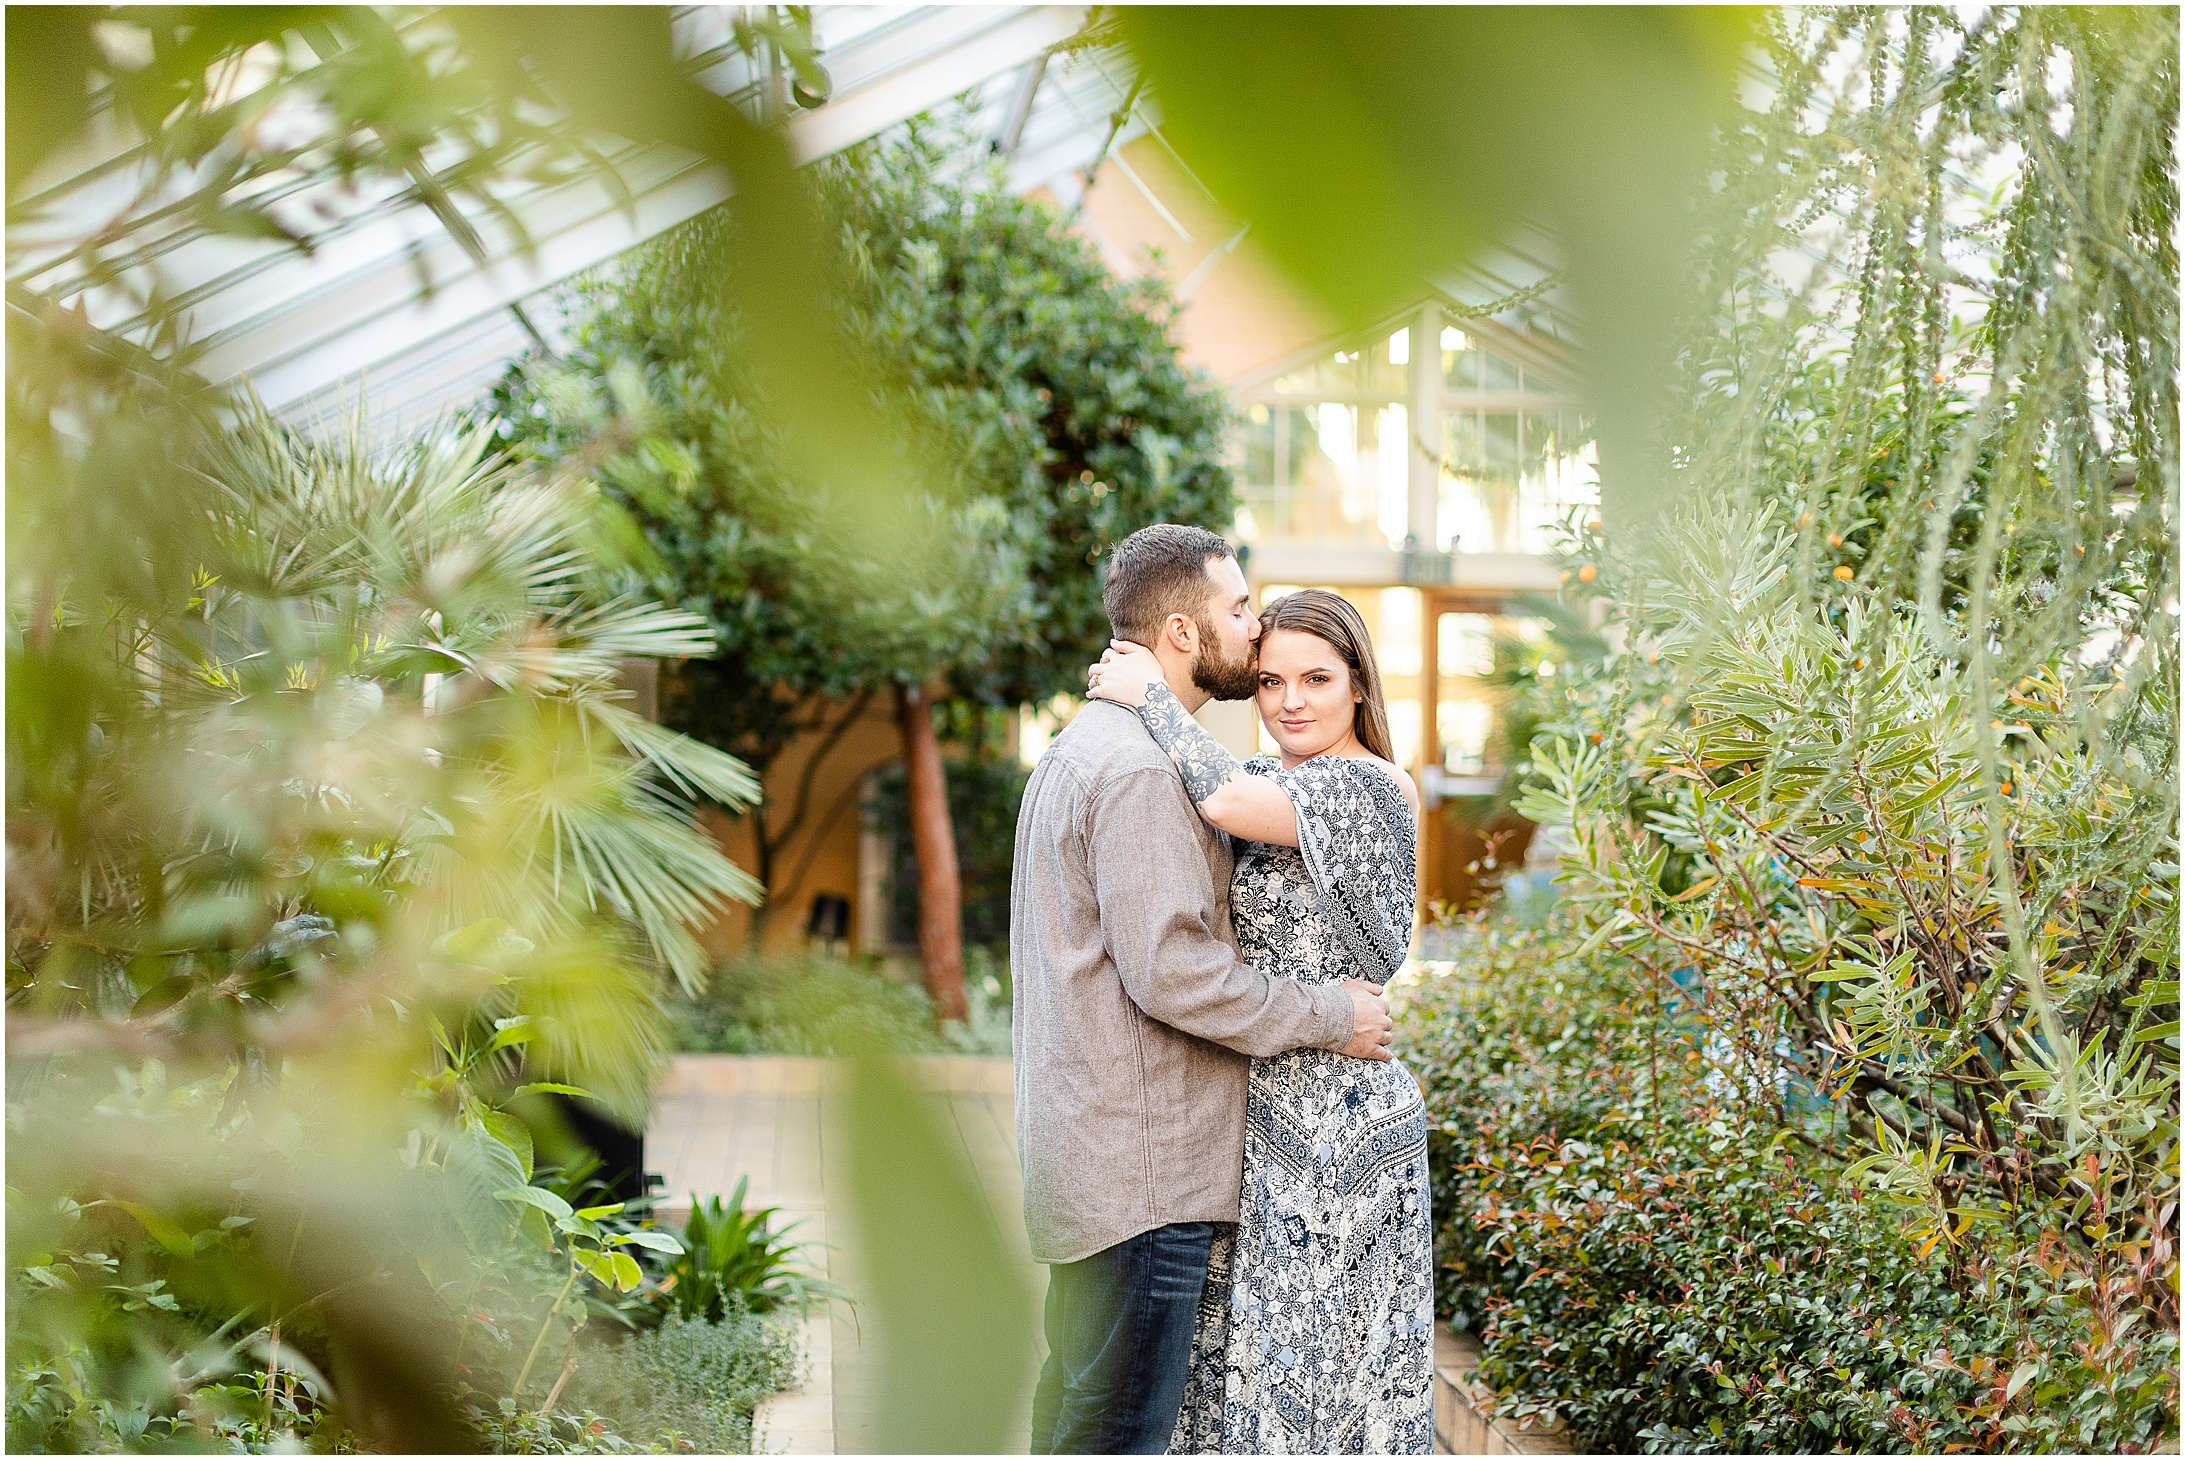 Rawlings-Conservatory-Engagement-Photos_0294.jpg